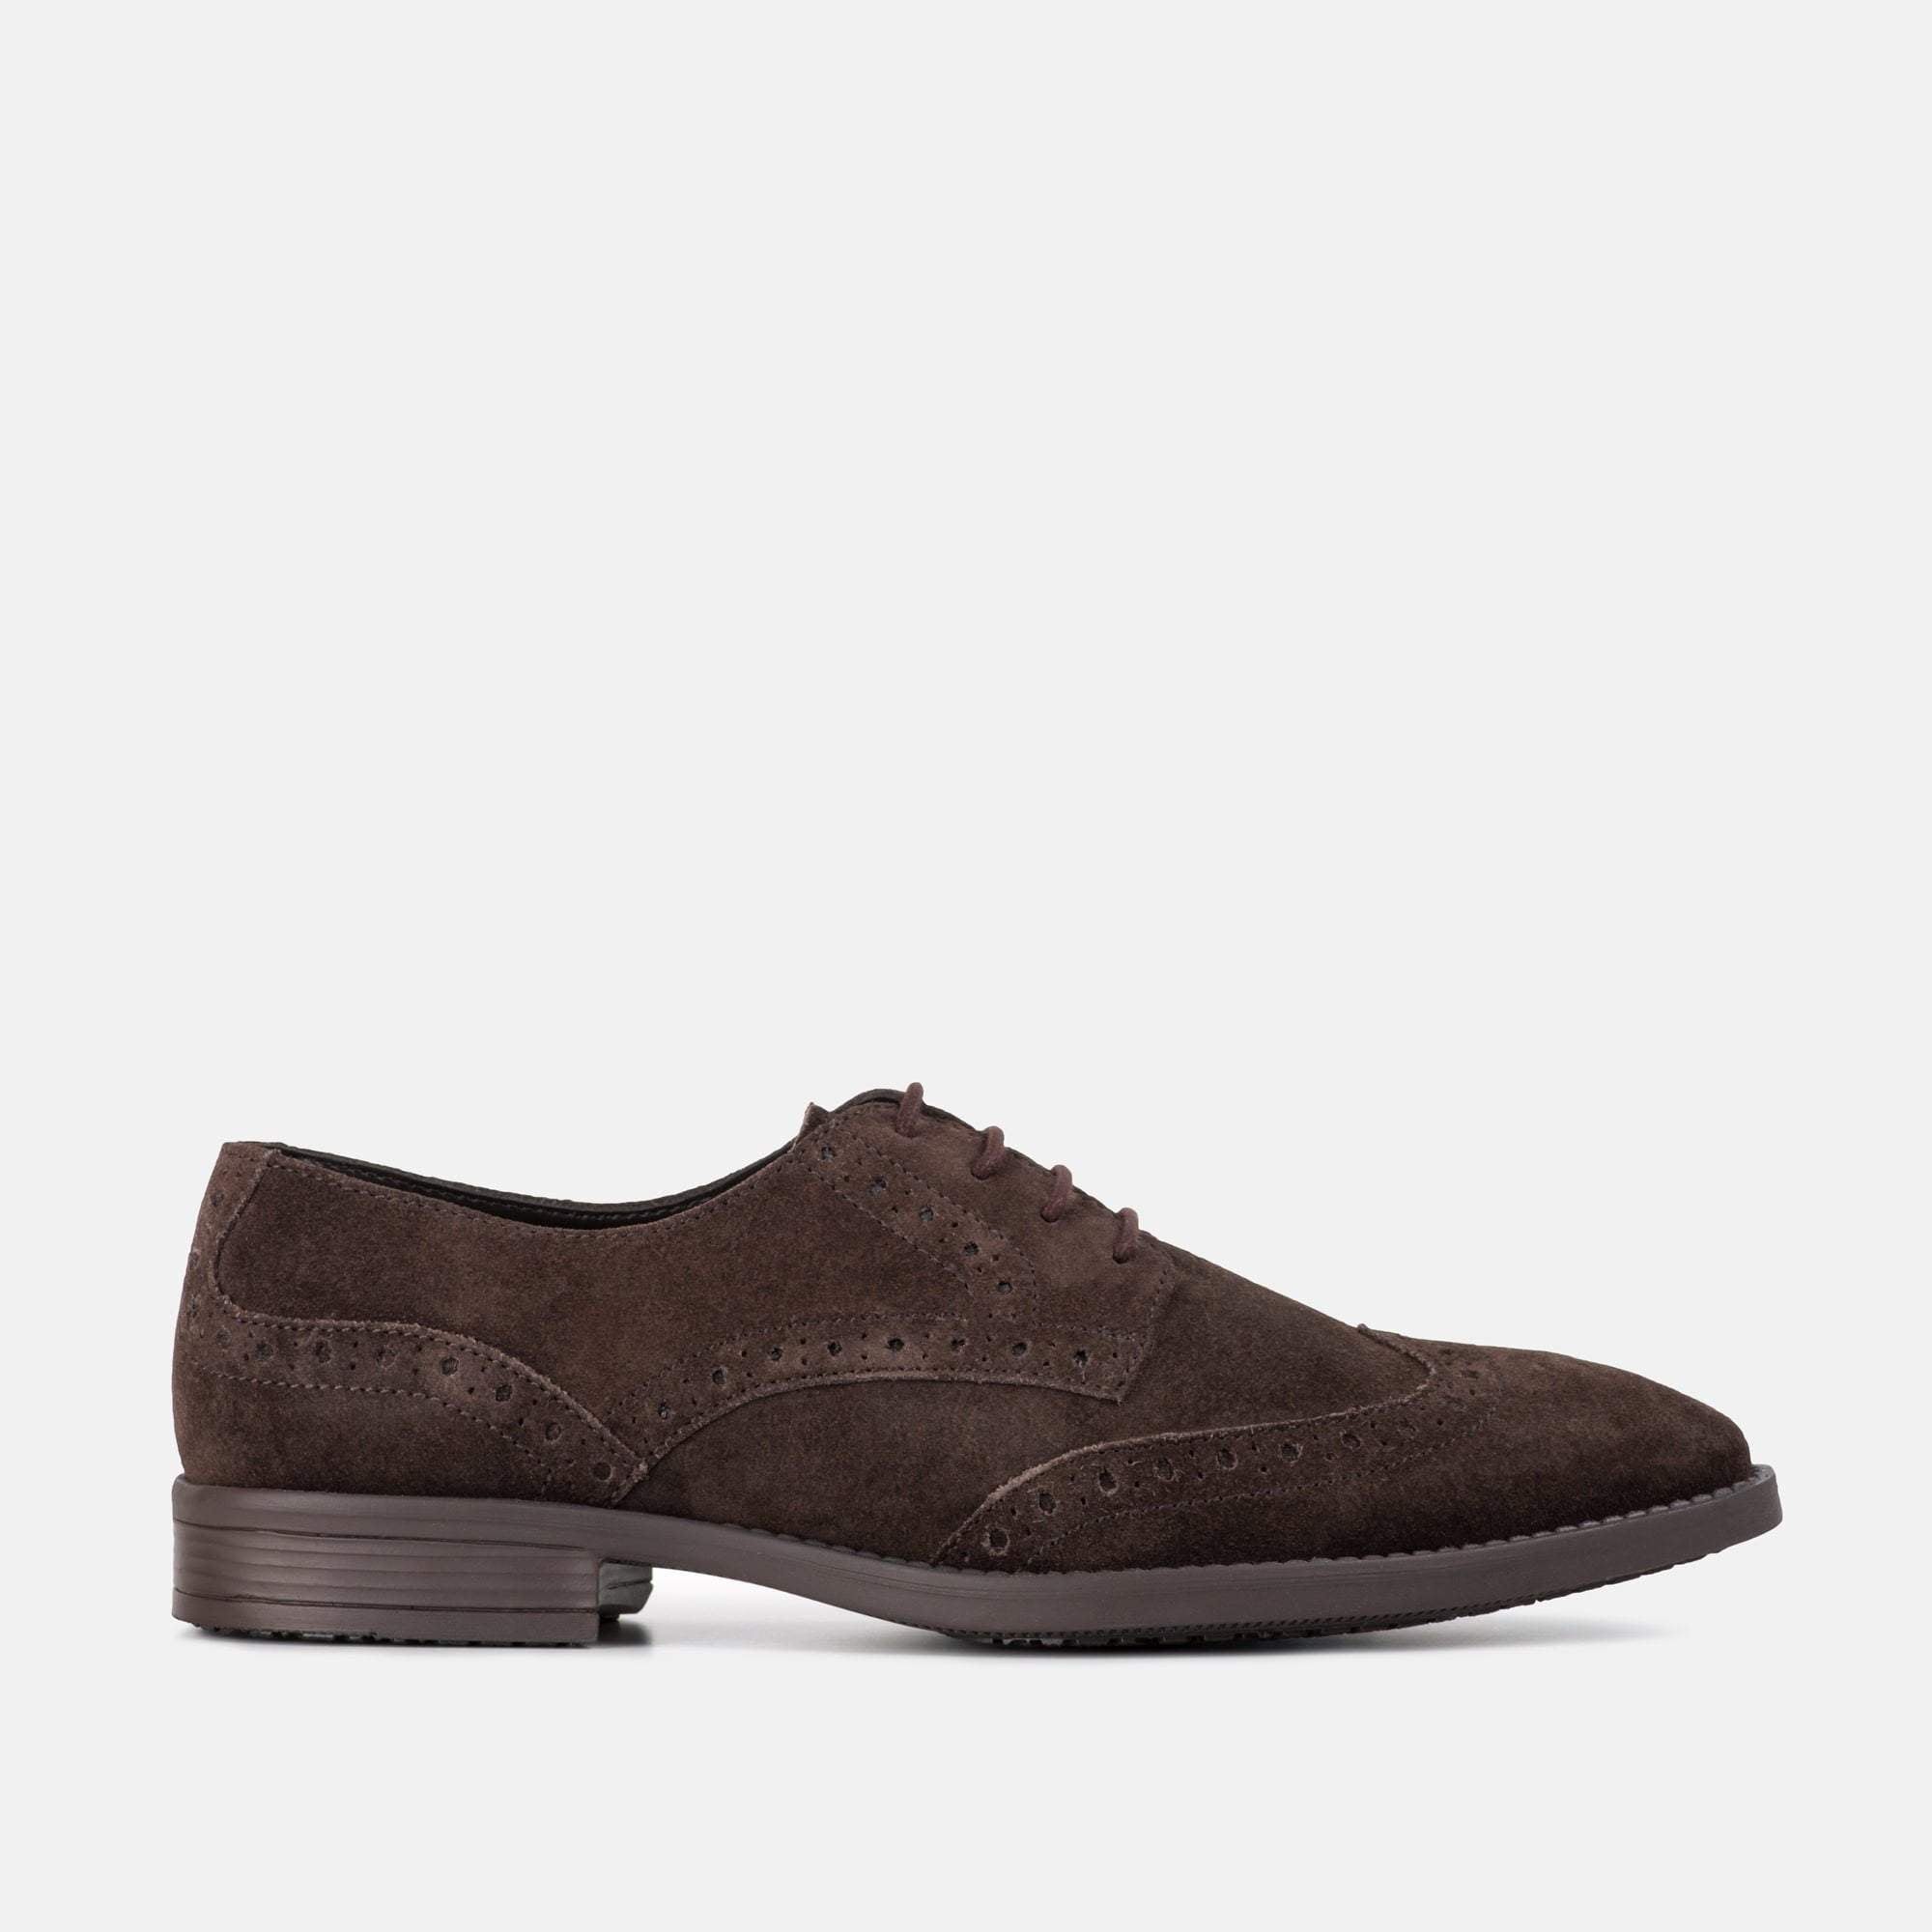 HARRIS BROWN SUEDE BROGUE